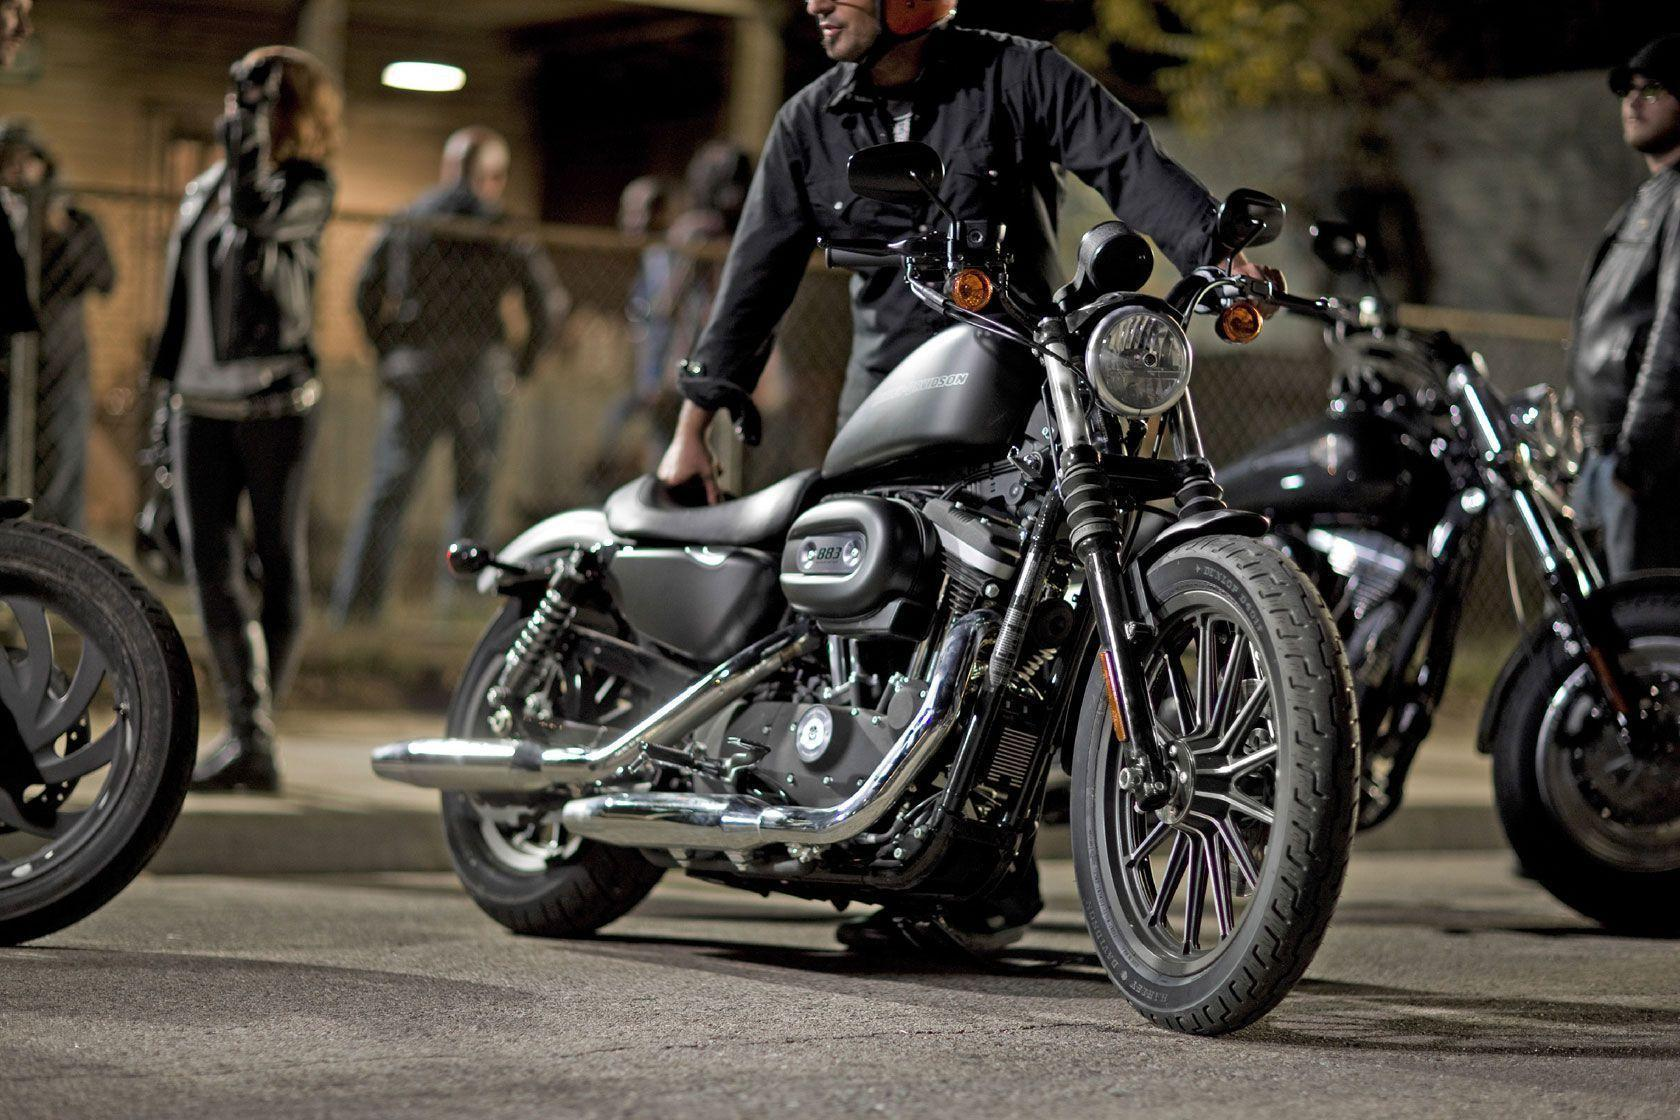 Harley Davidson Sportster Wallpapers 1680x1120